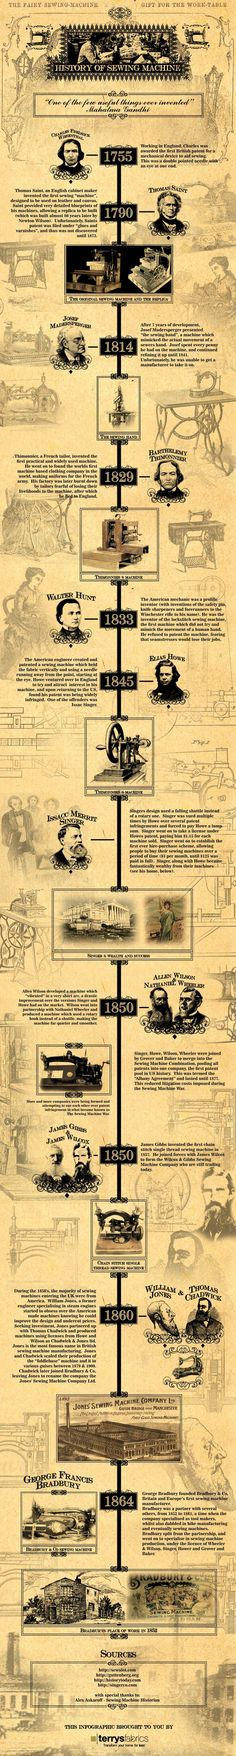 History of Sewing Machine by Terrys Fabrics